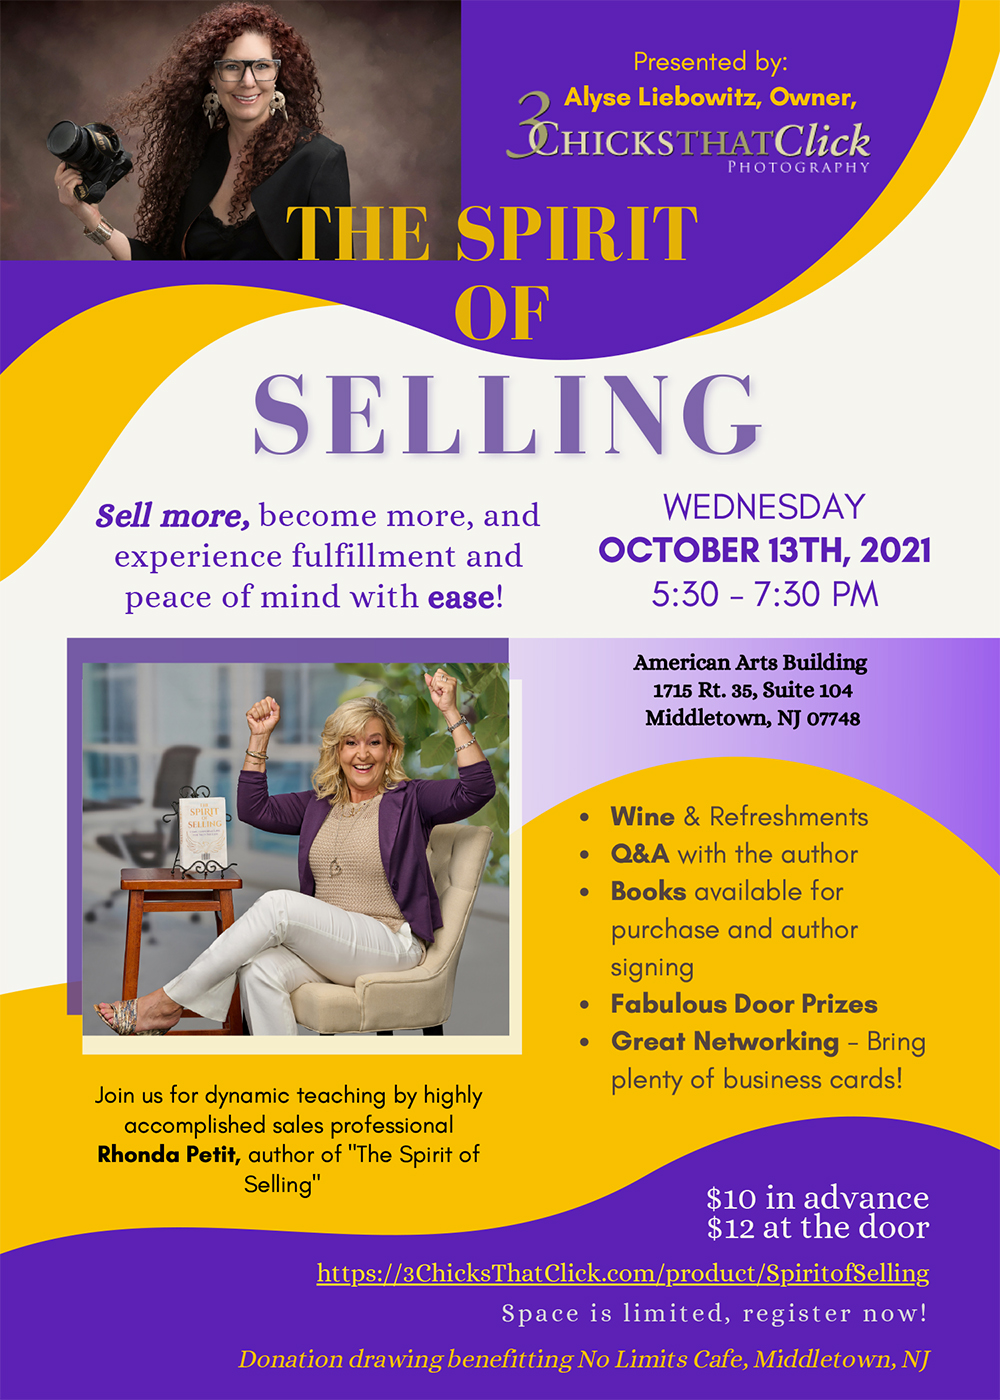 The Spirit of Selling, with author Rhonda Petit, photographed by 3 Chicks That Click Photography